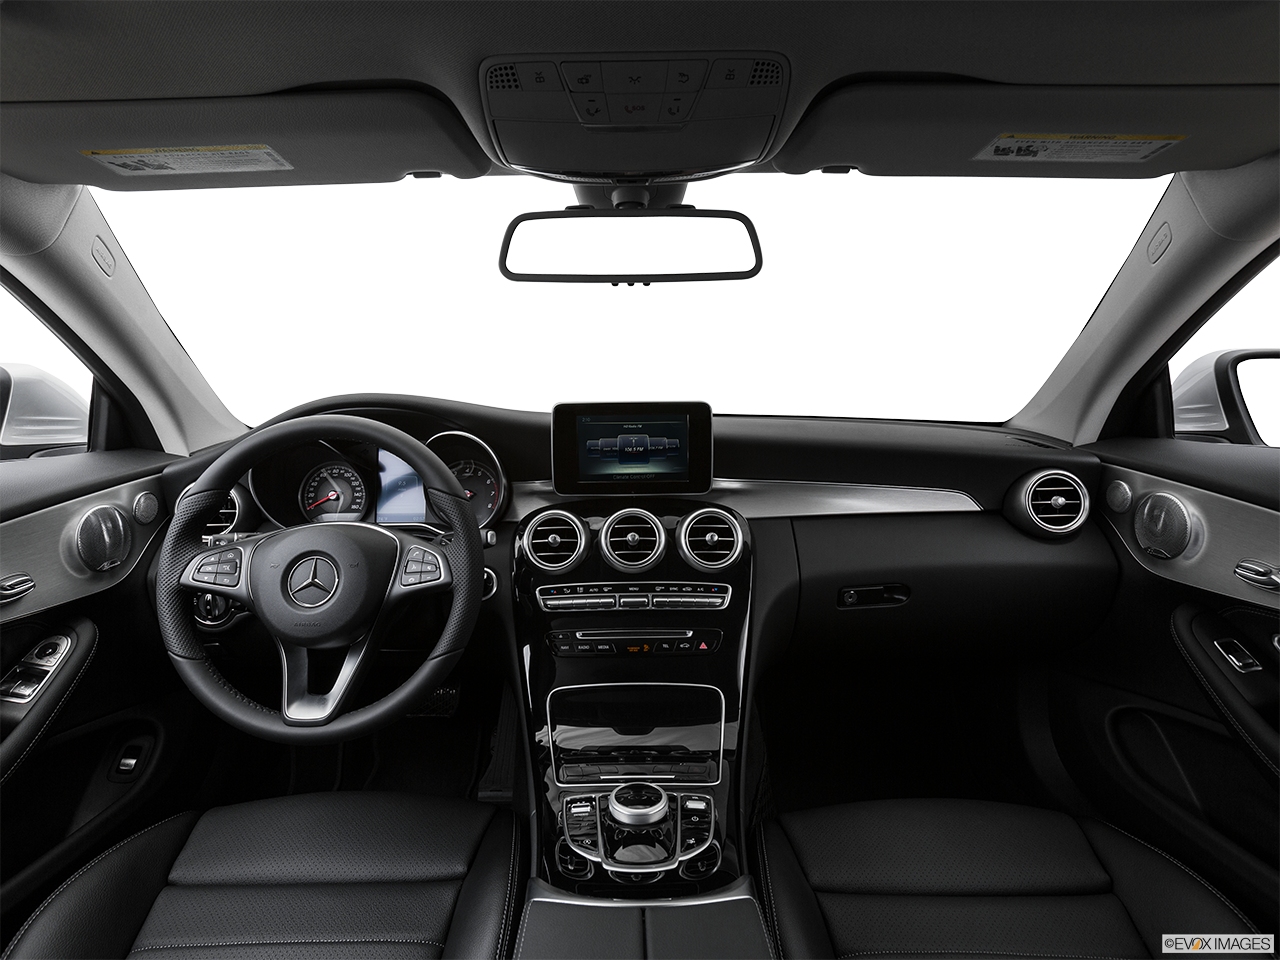 Interior View Of 2017 Mercedes-Benz C300 Coupe in Shrewsbury